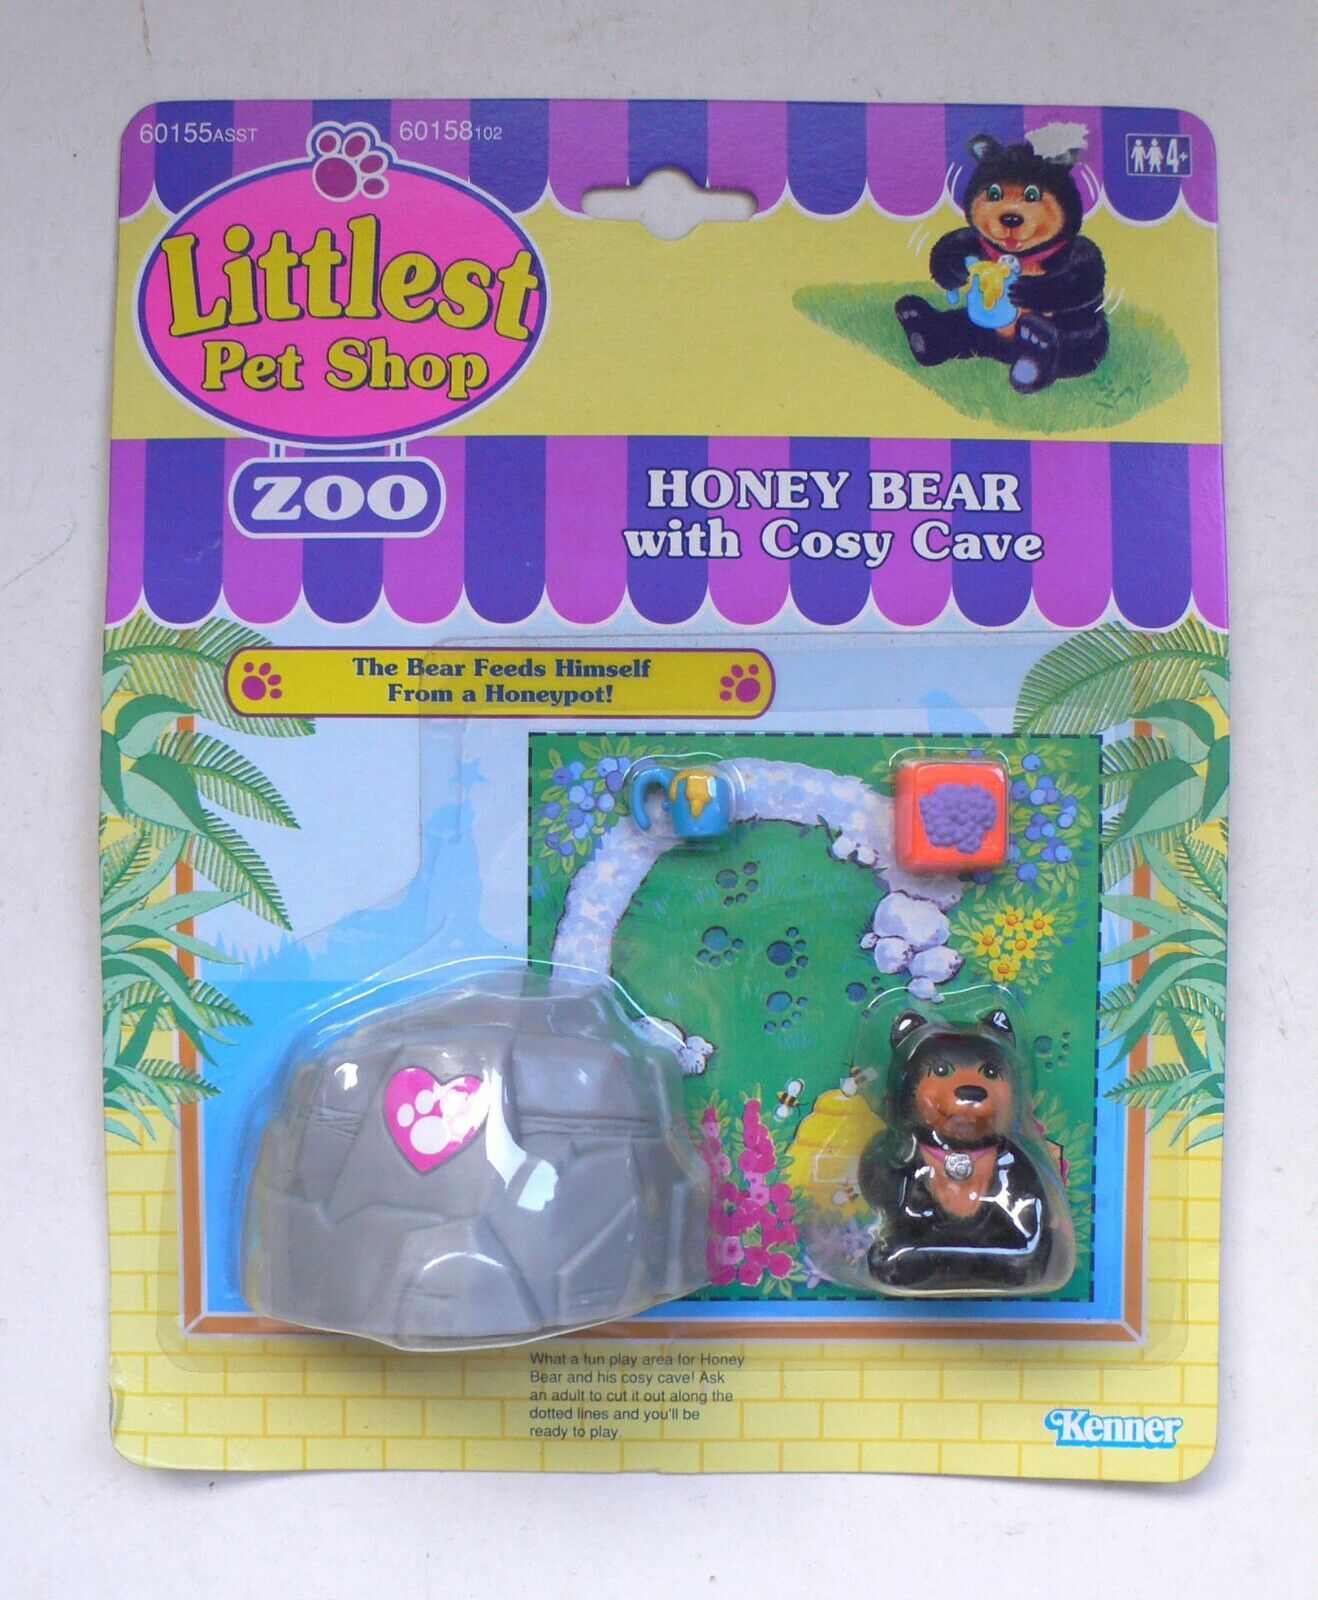 Vintage Kenner Littlest Pet Shop ZOO ZOO ZOO Honey Bear with Cosy Cave set MOC 1993 3744d1